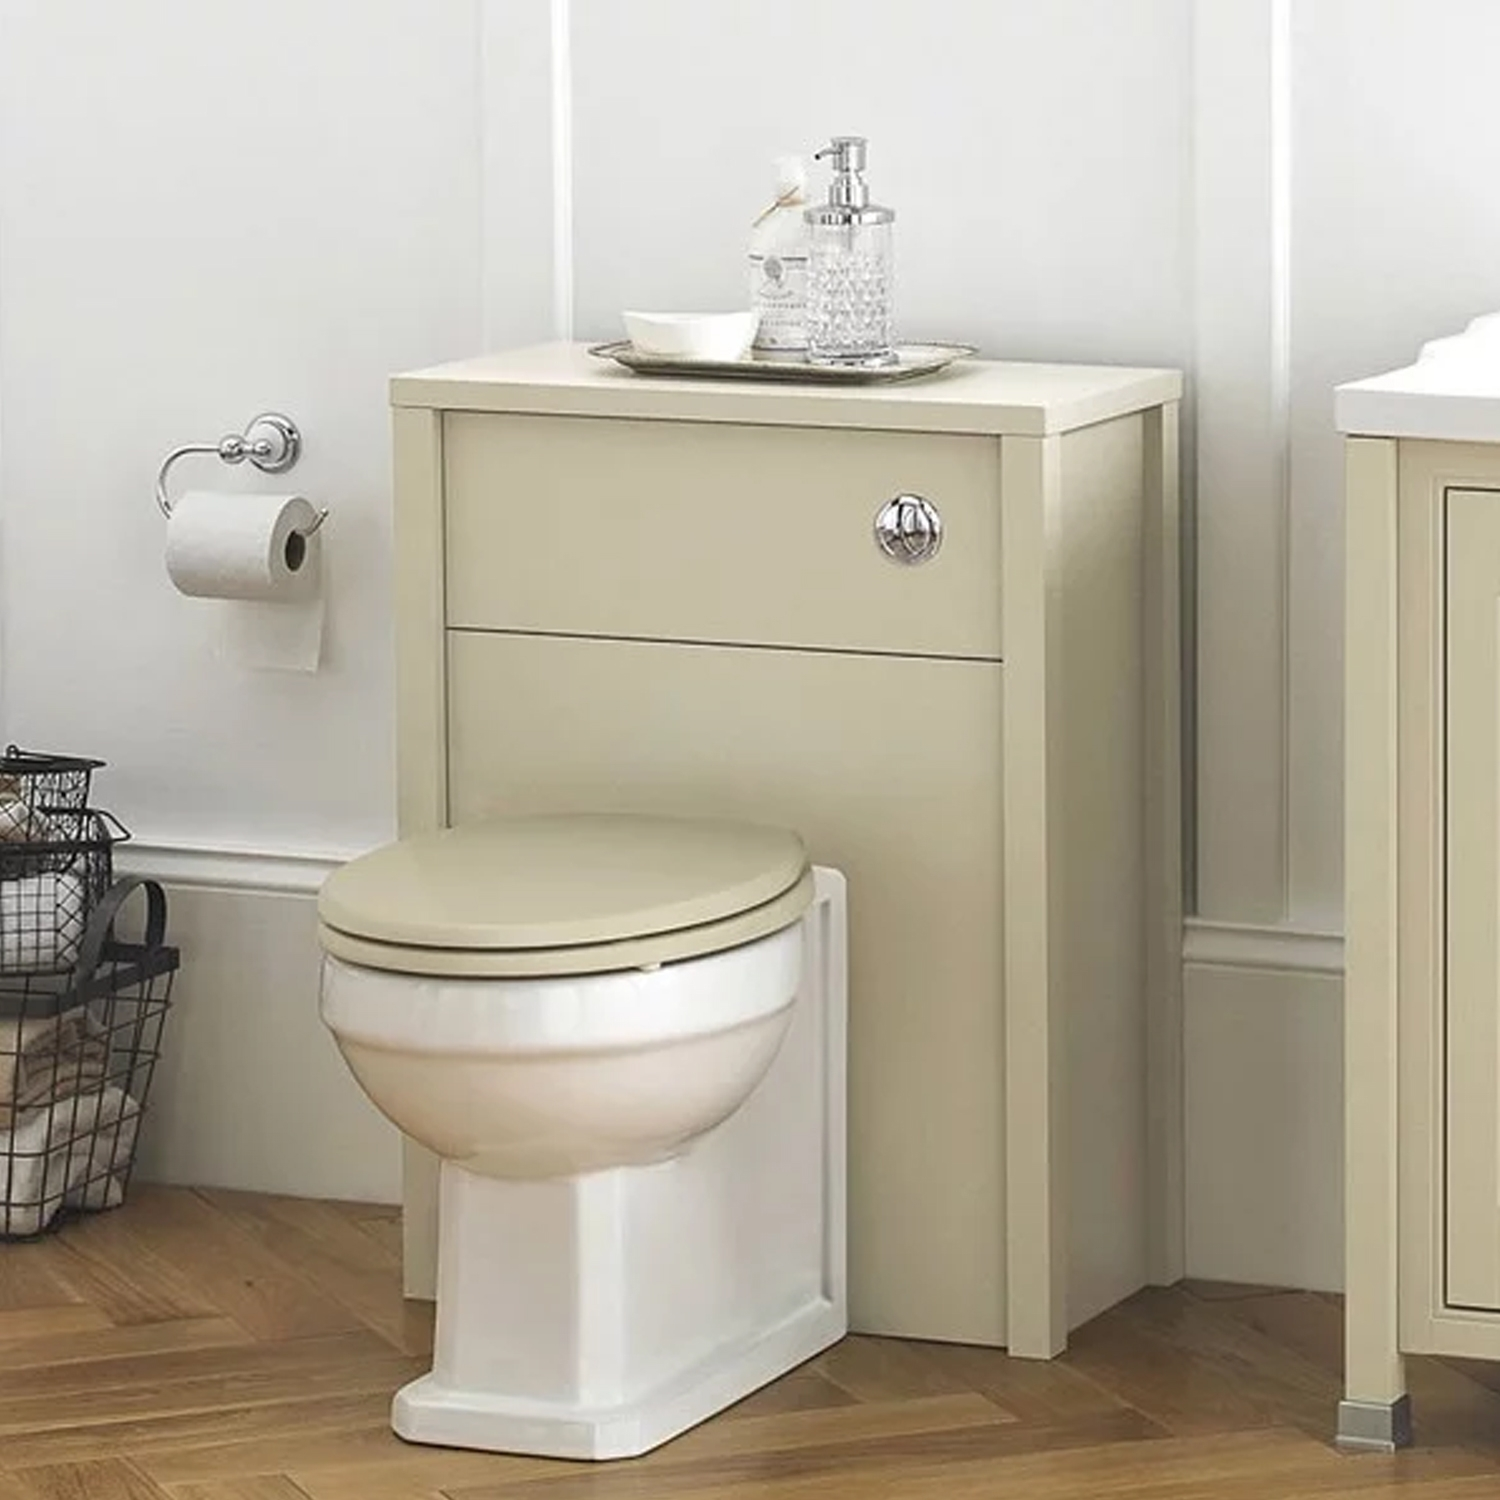 Hudson Reed Ivory Back to Wall WC Toilet Unit 595mm Wide Front Access